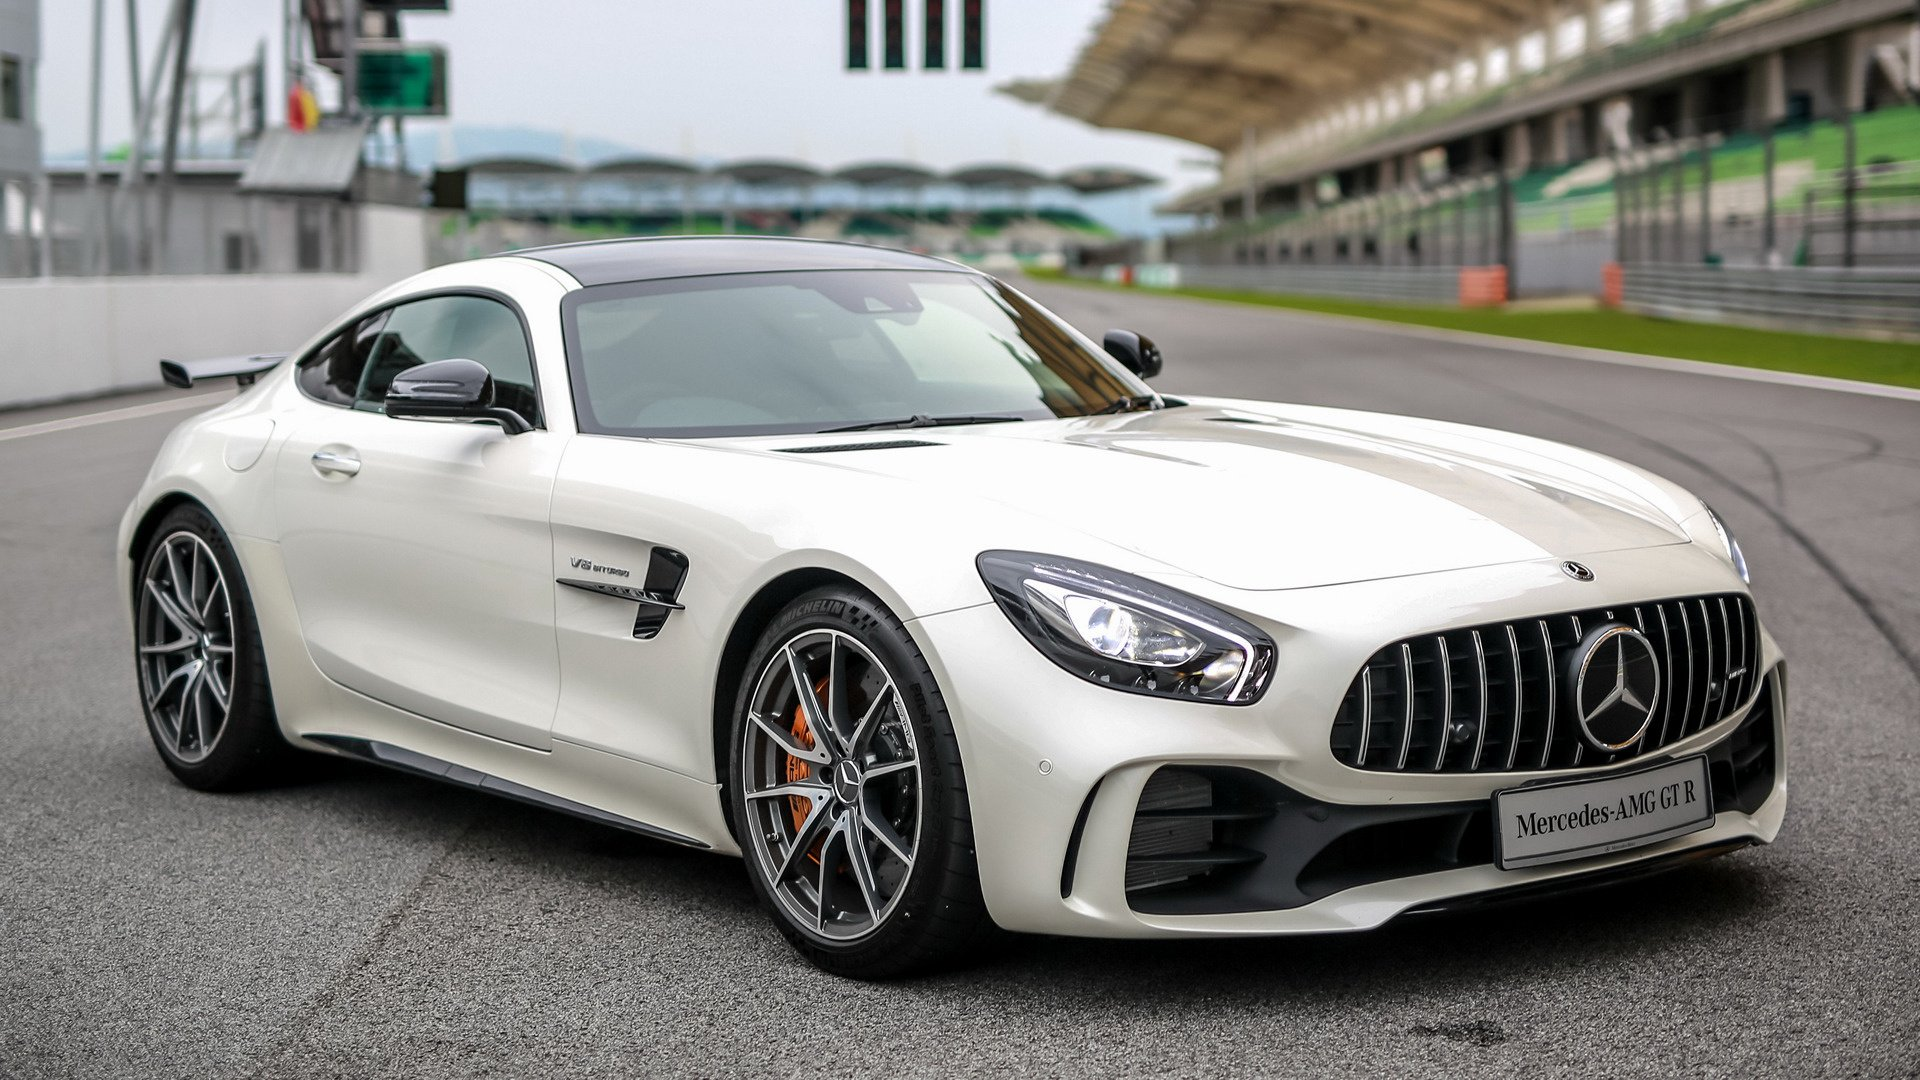 2017 Mercedes-AMG GT R HD Wallpaper | Background Image ...